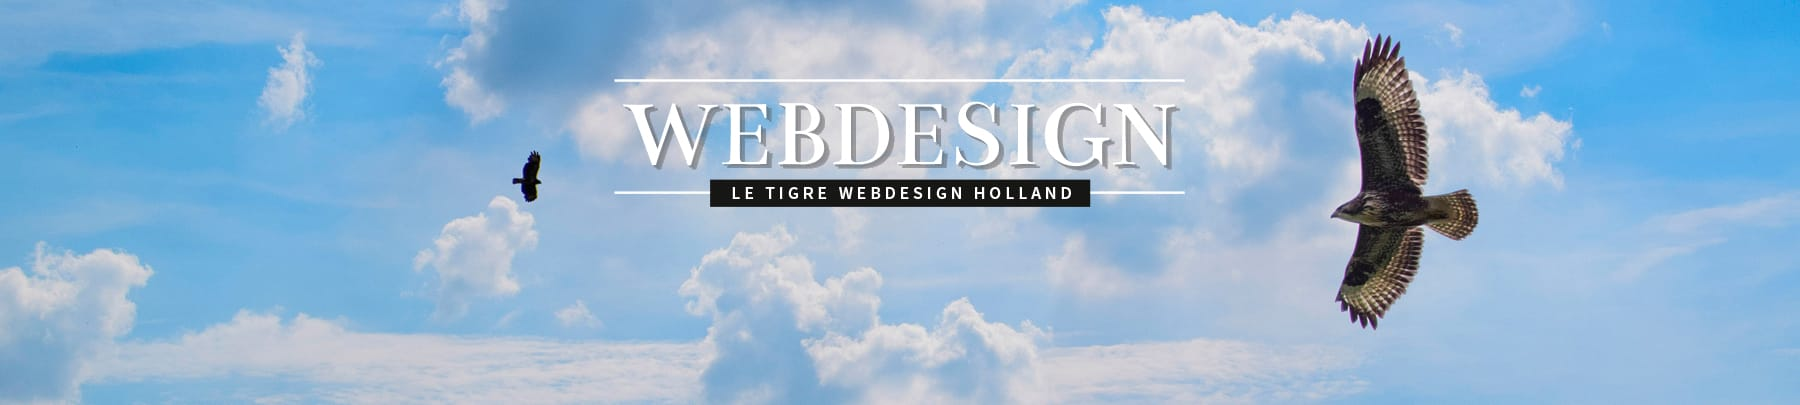 LeTigre Webdesign Holland